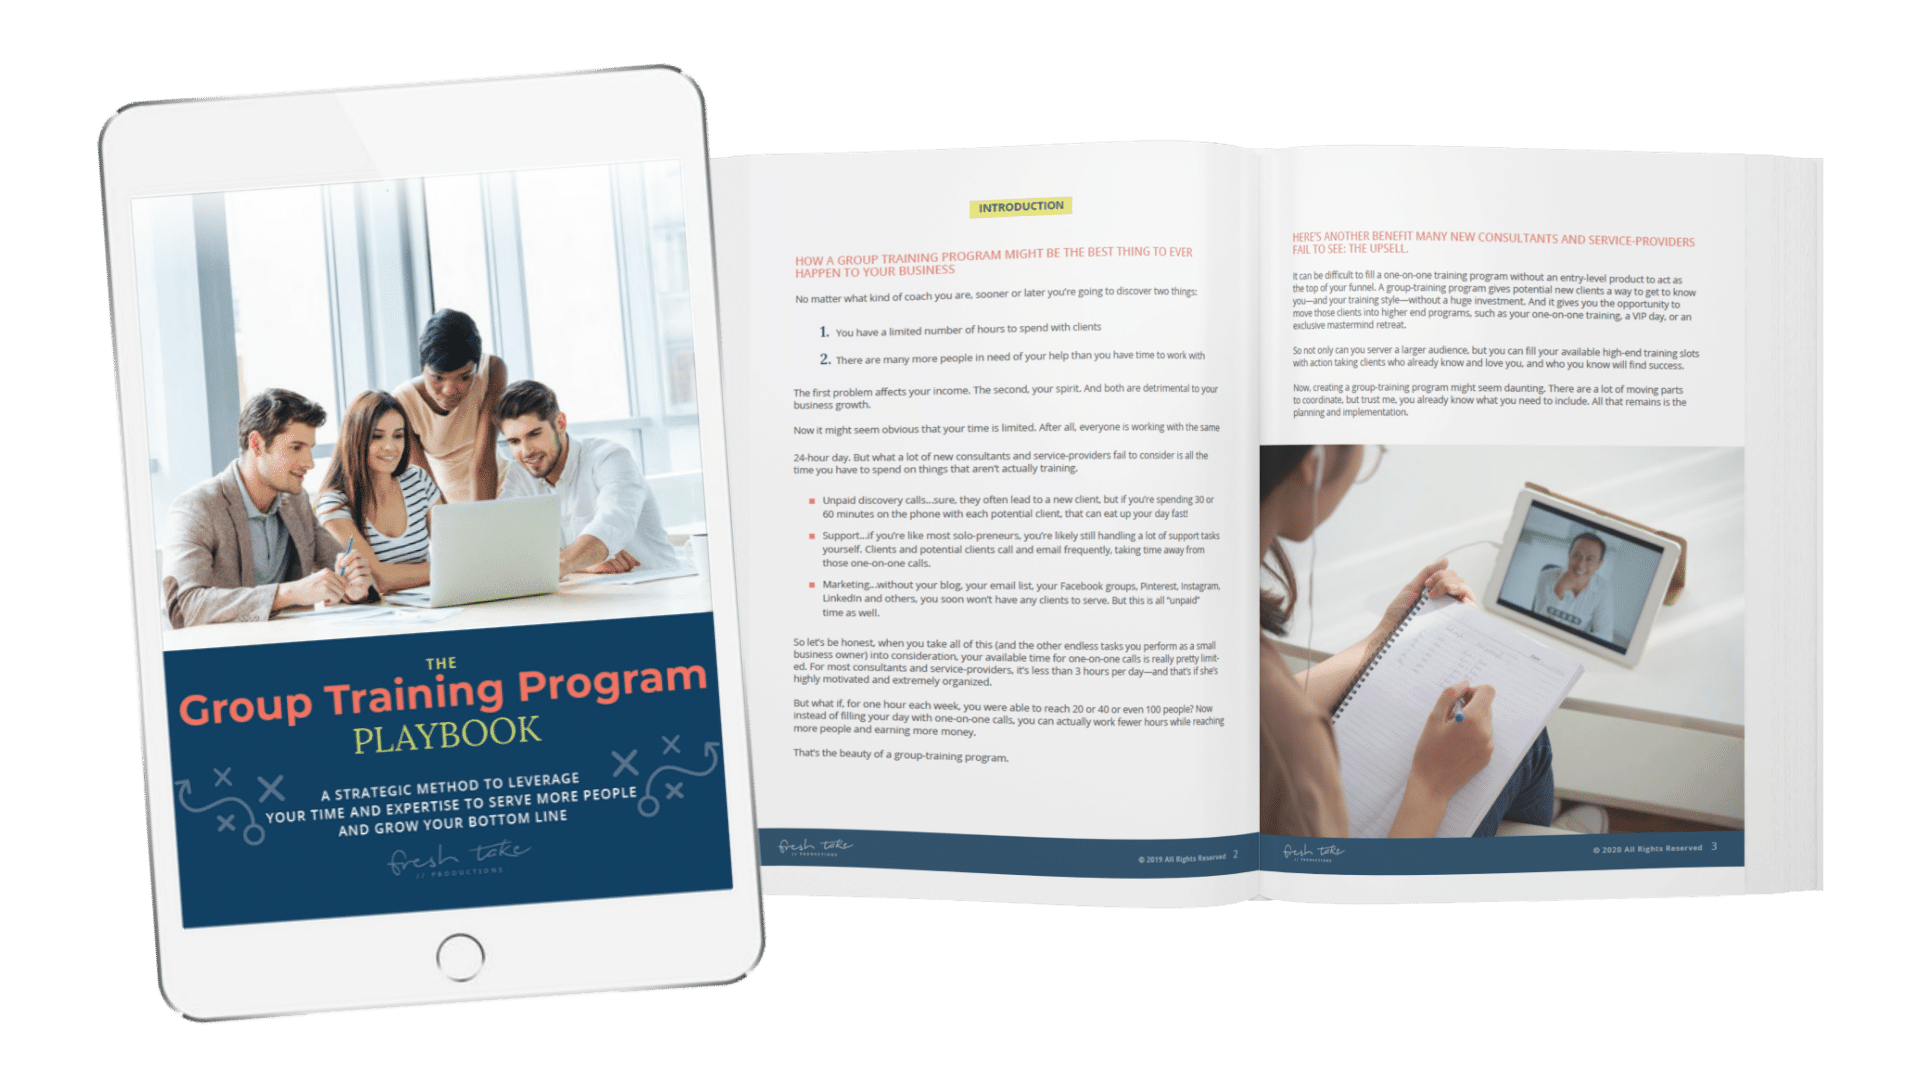 group training program playbook